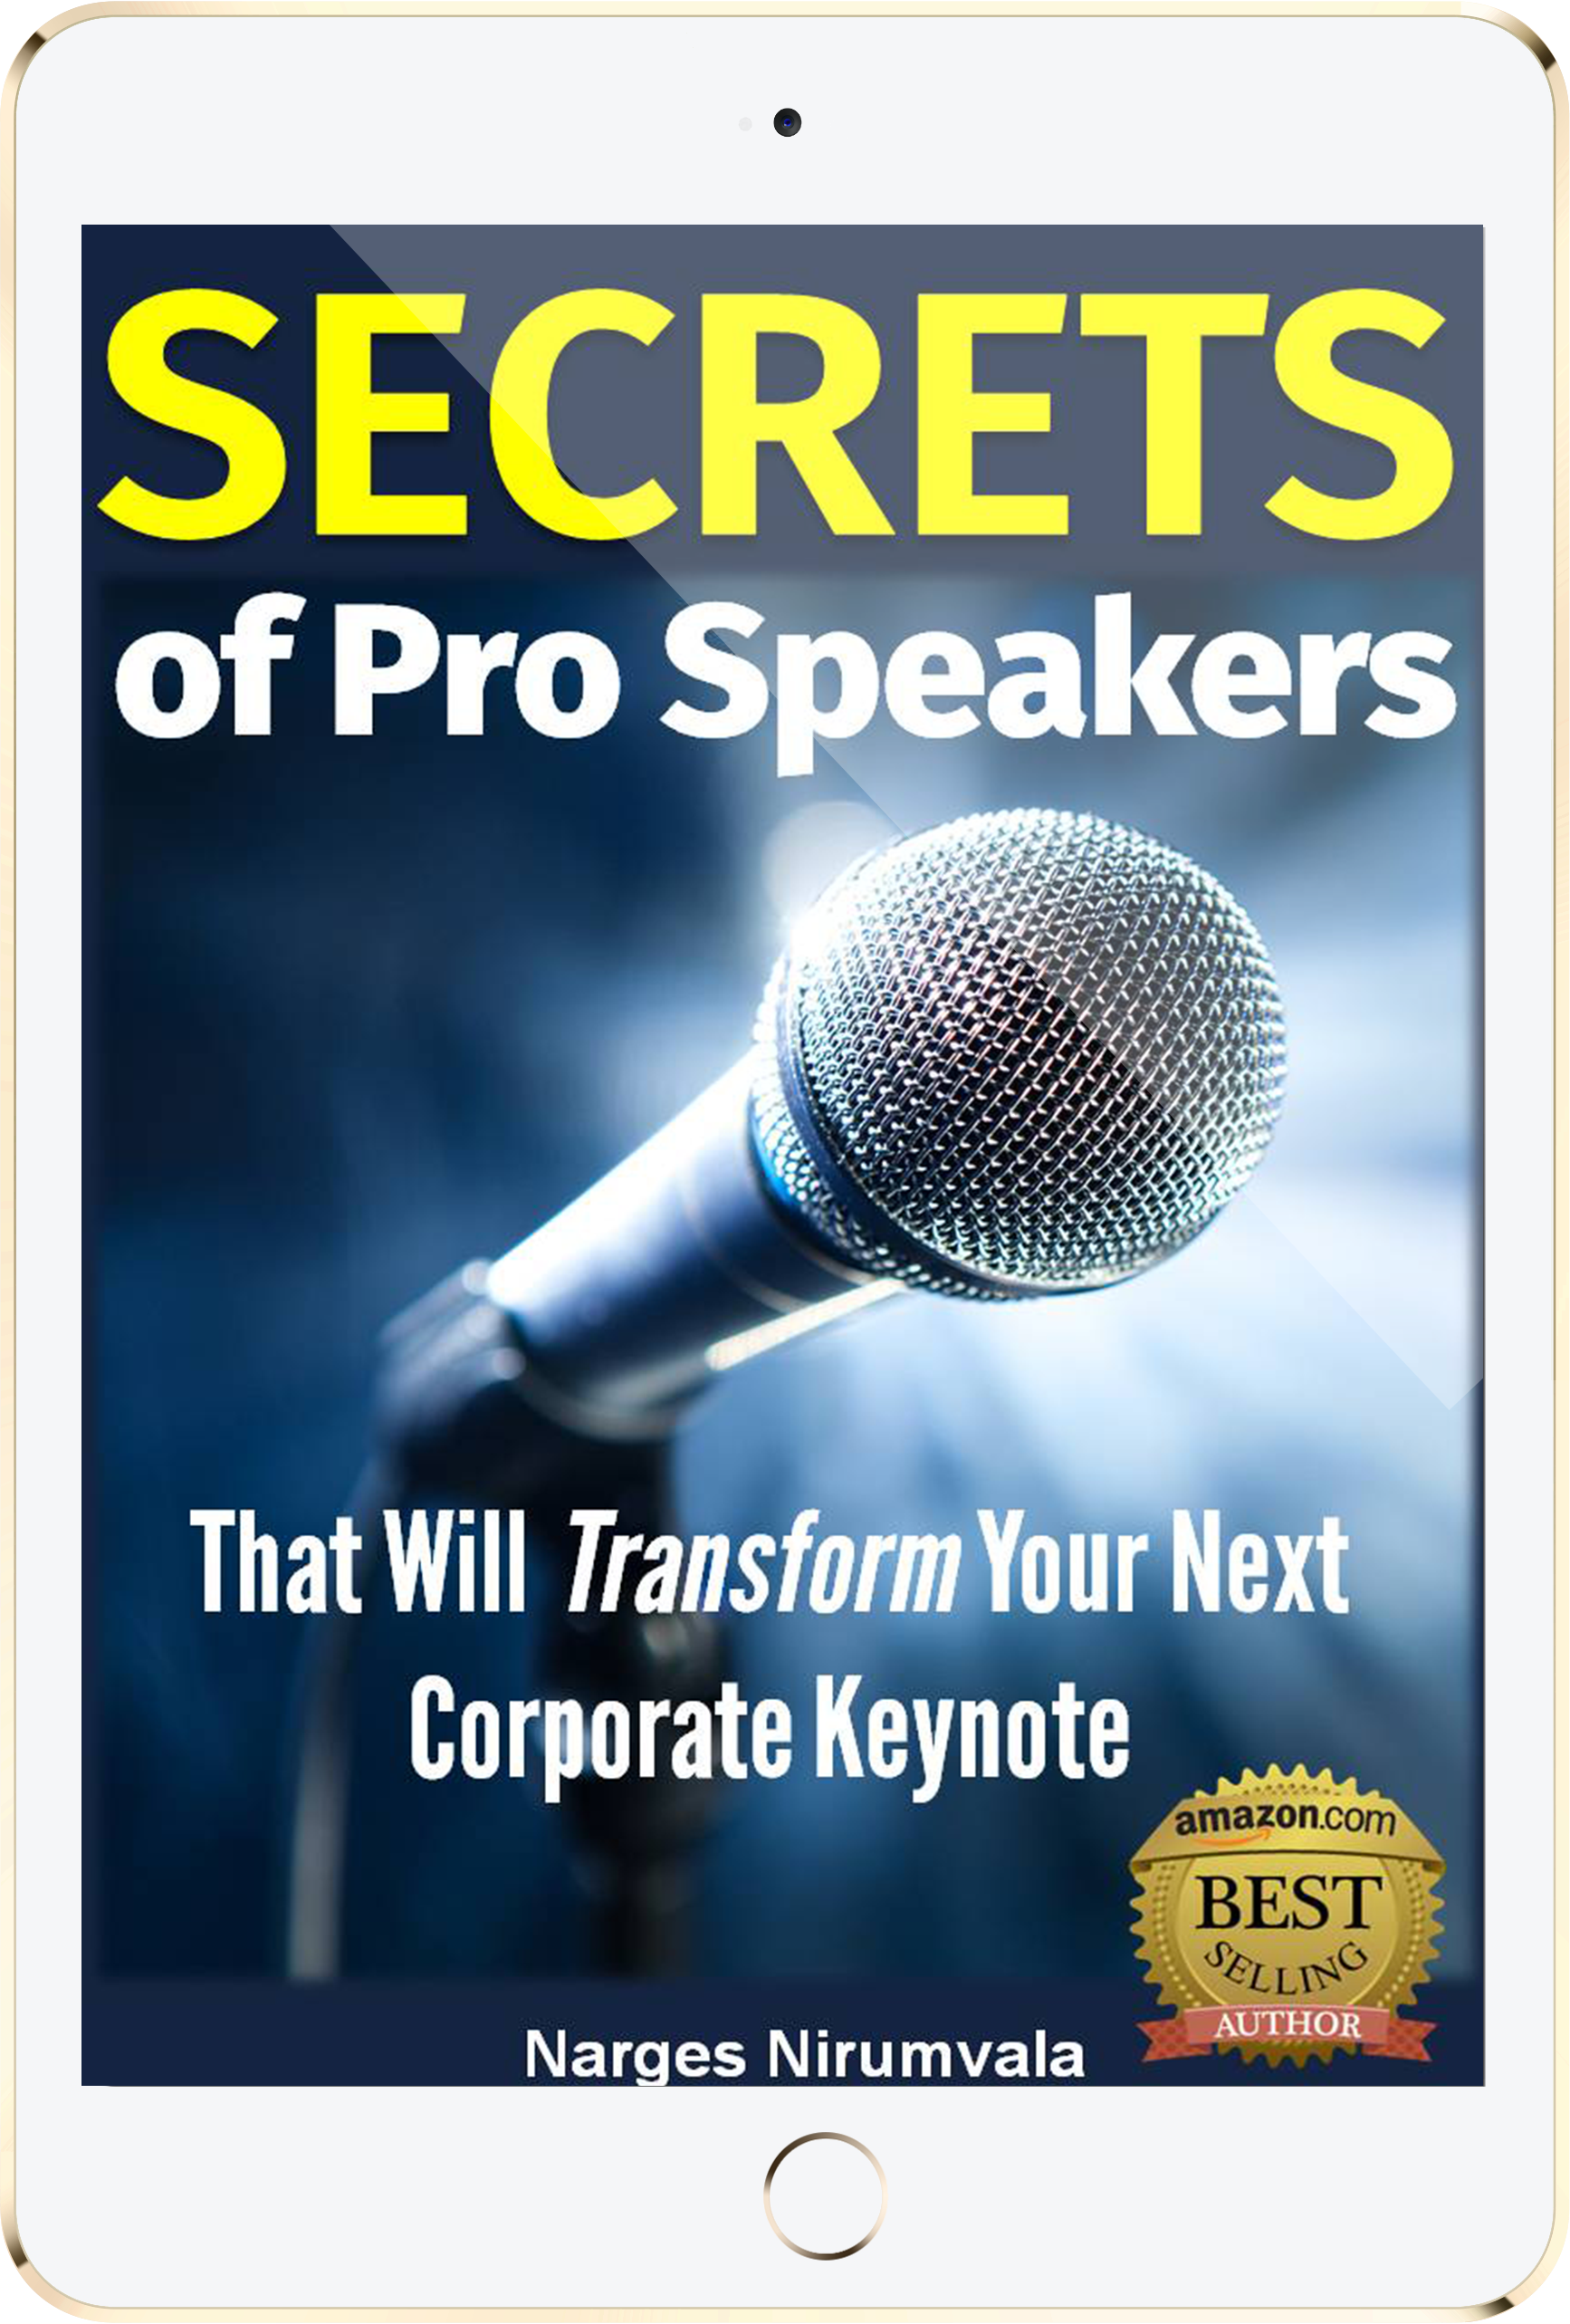 An image of the Free Ebook SECRETS OF PRO SPEAKERS